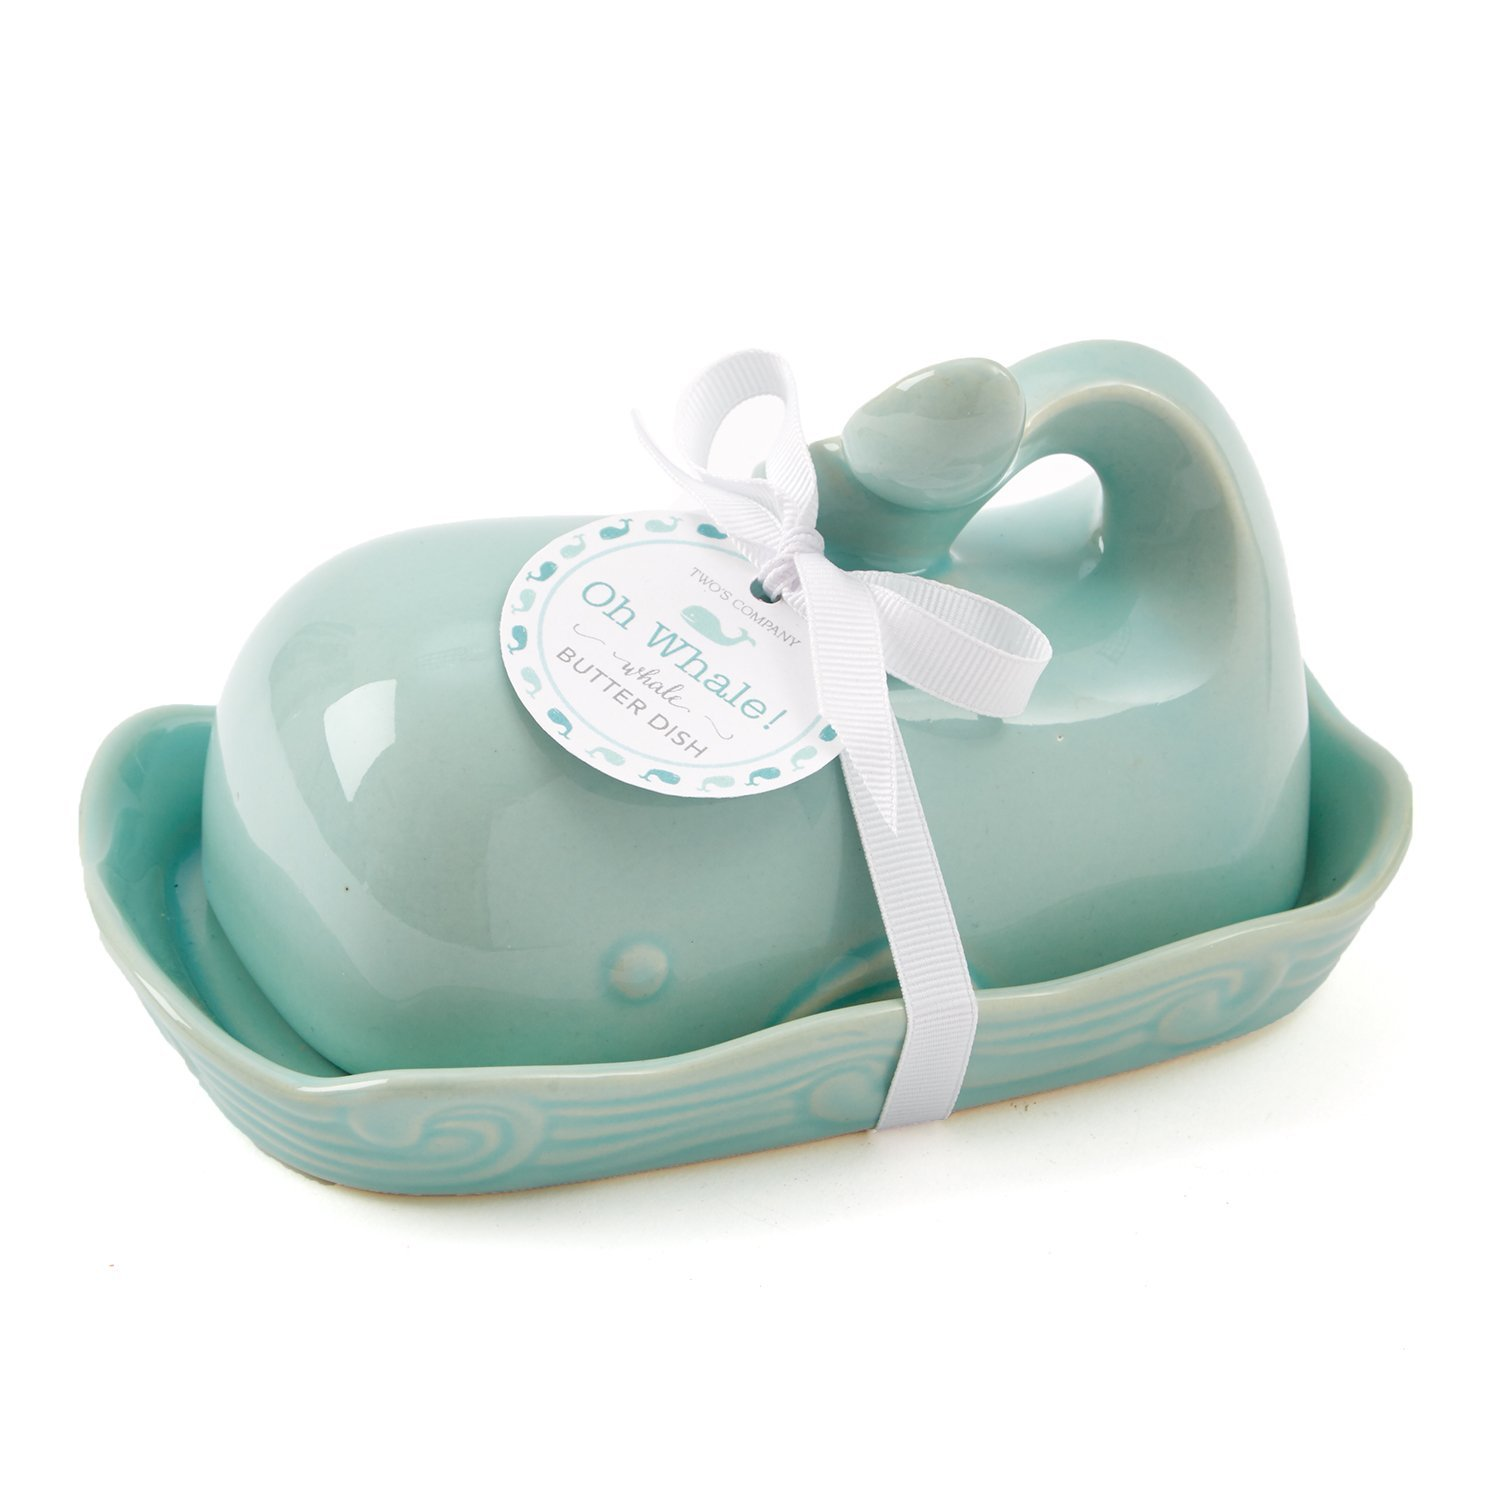 WHALE SHAPED BUTTER DISH in Duck Egg Blue Ceramic - Kitchen Home ...